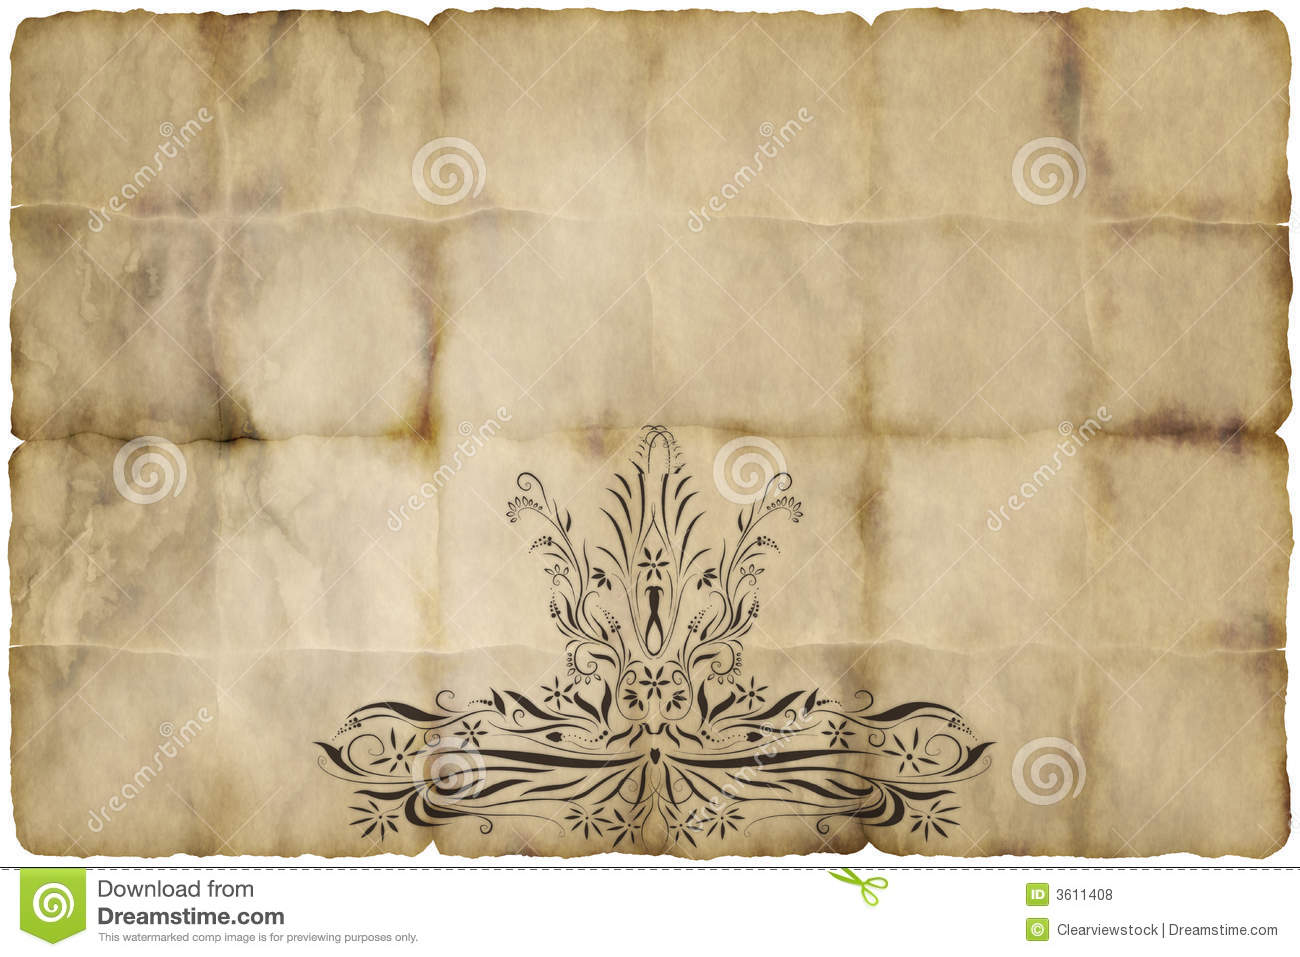 Regal Design Old Regal Paper Parchment Stock Vector. Illustration Of Canvas - 3611408